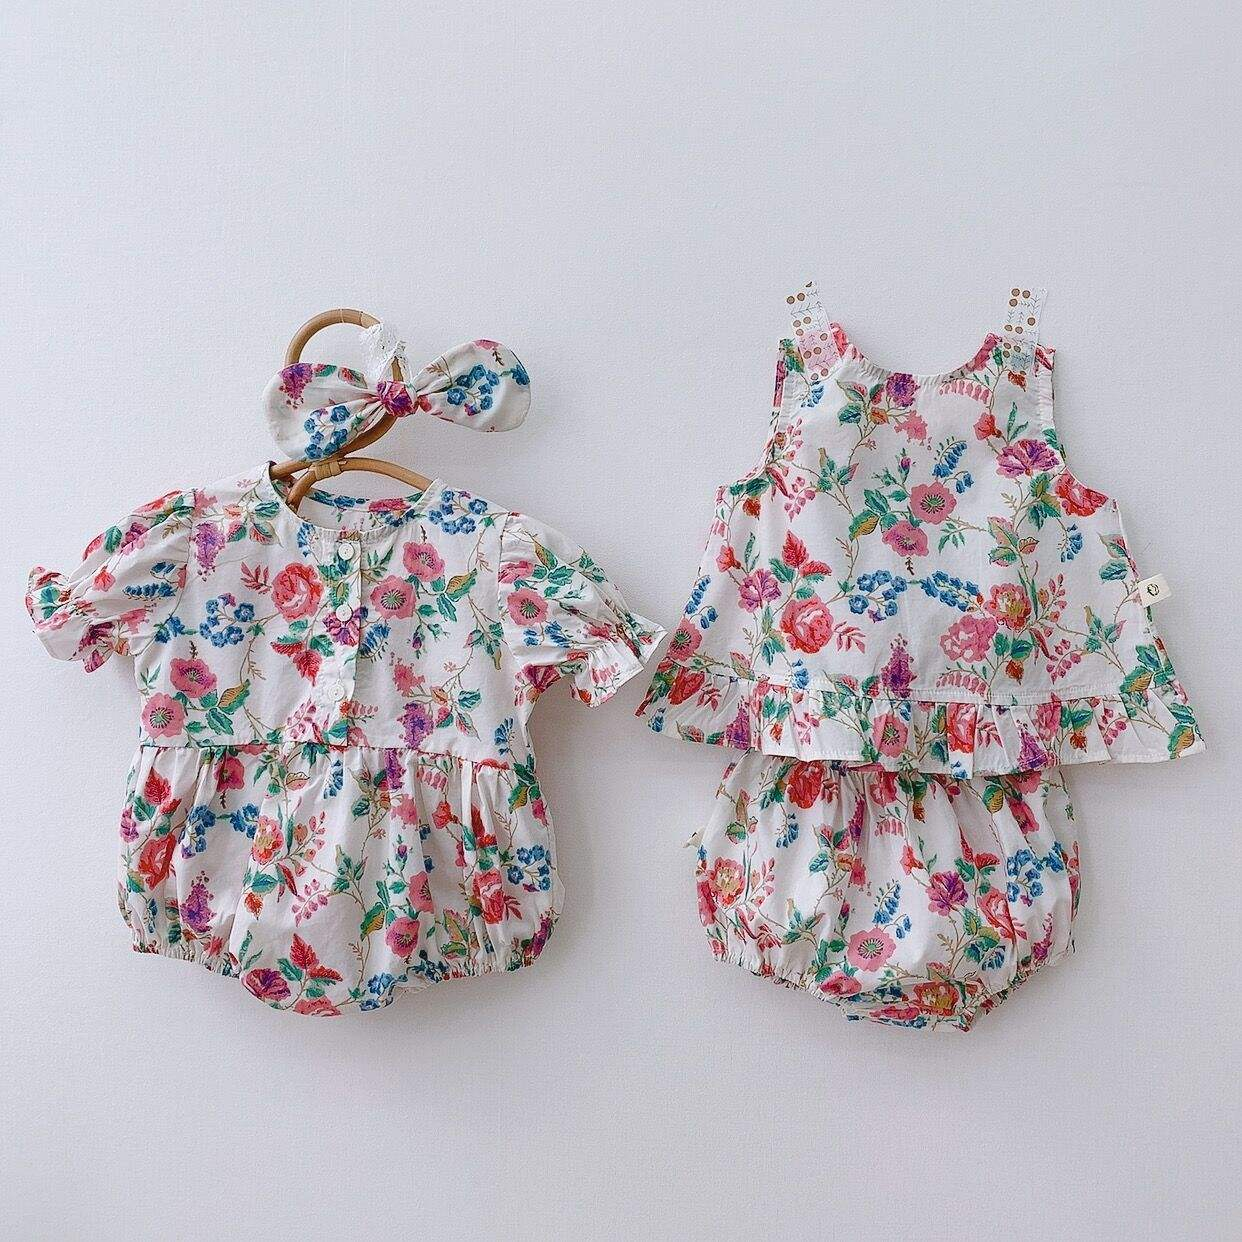 Wholesale kids floral romper set baby girls' rompers